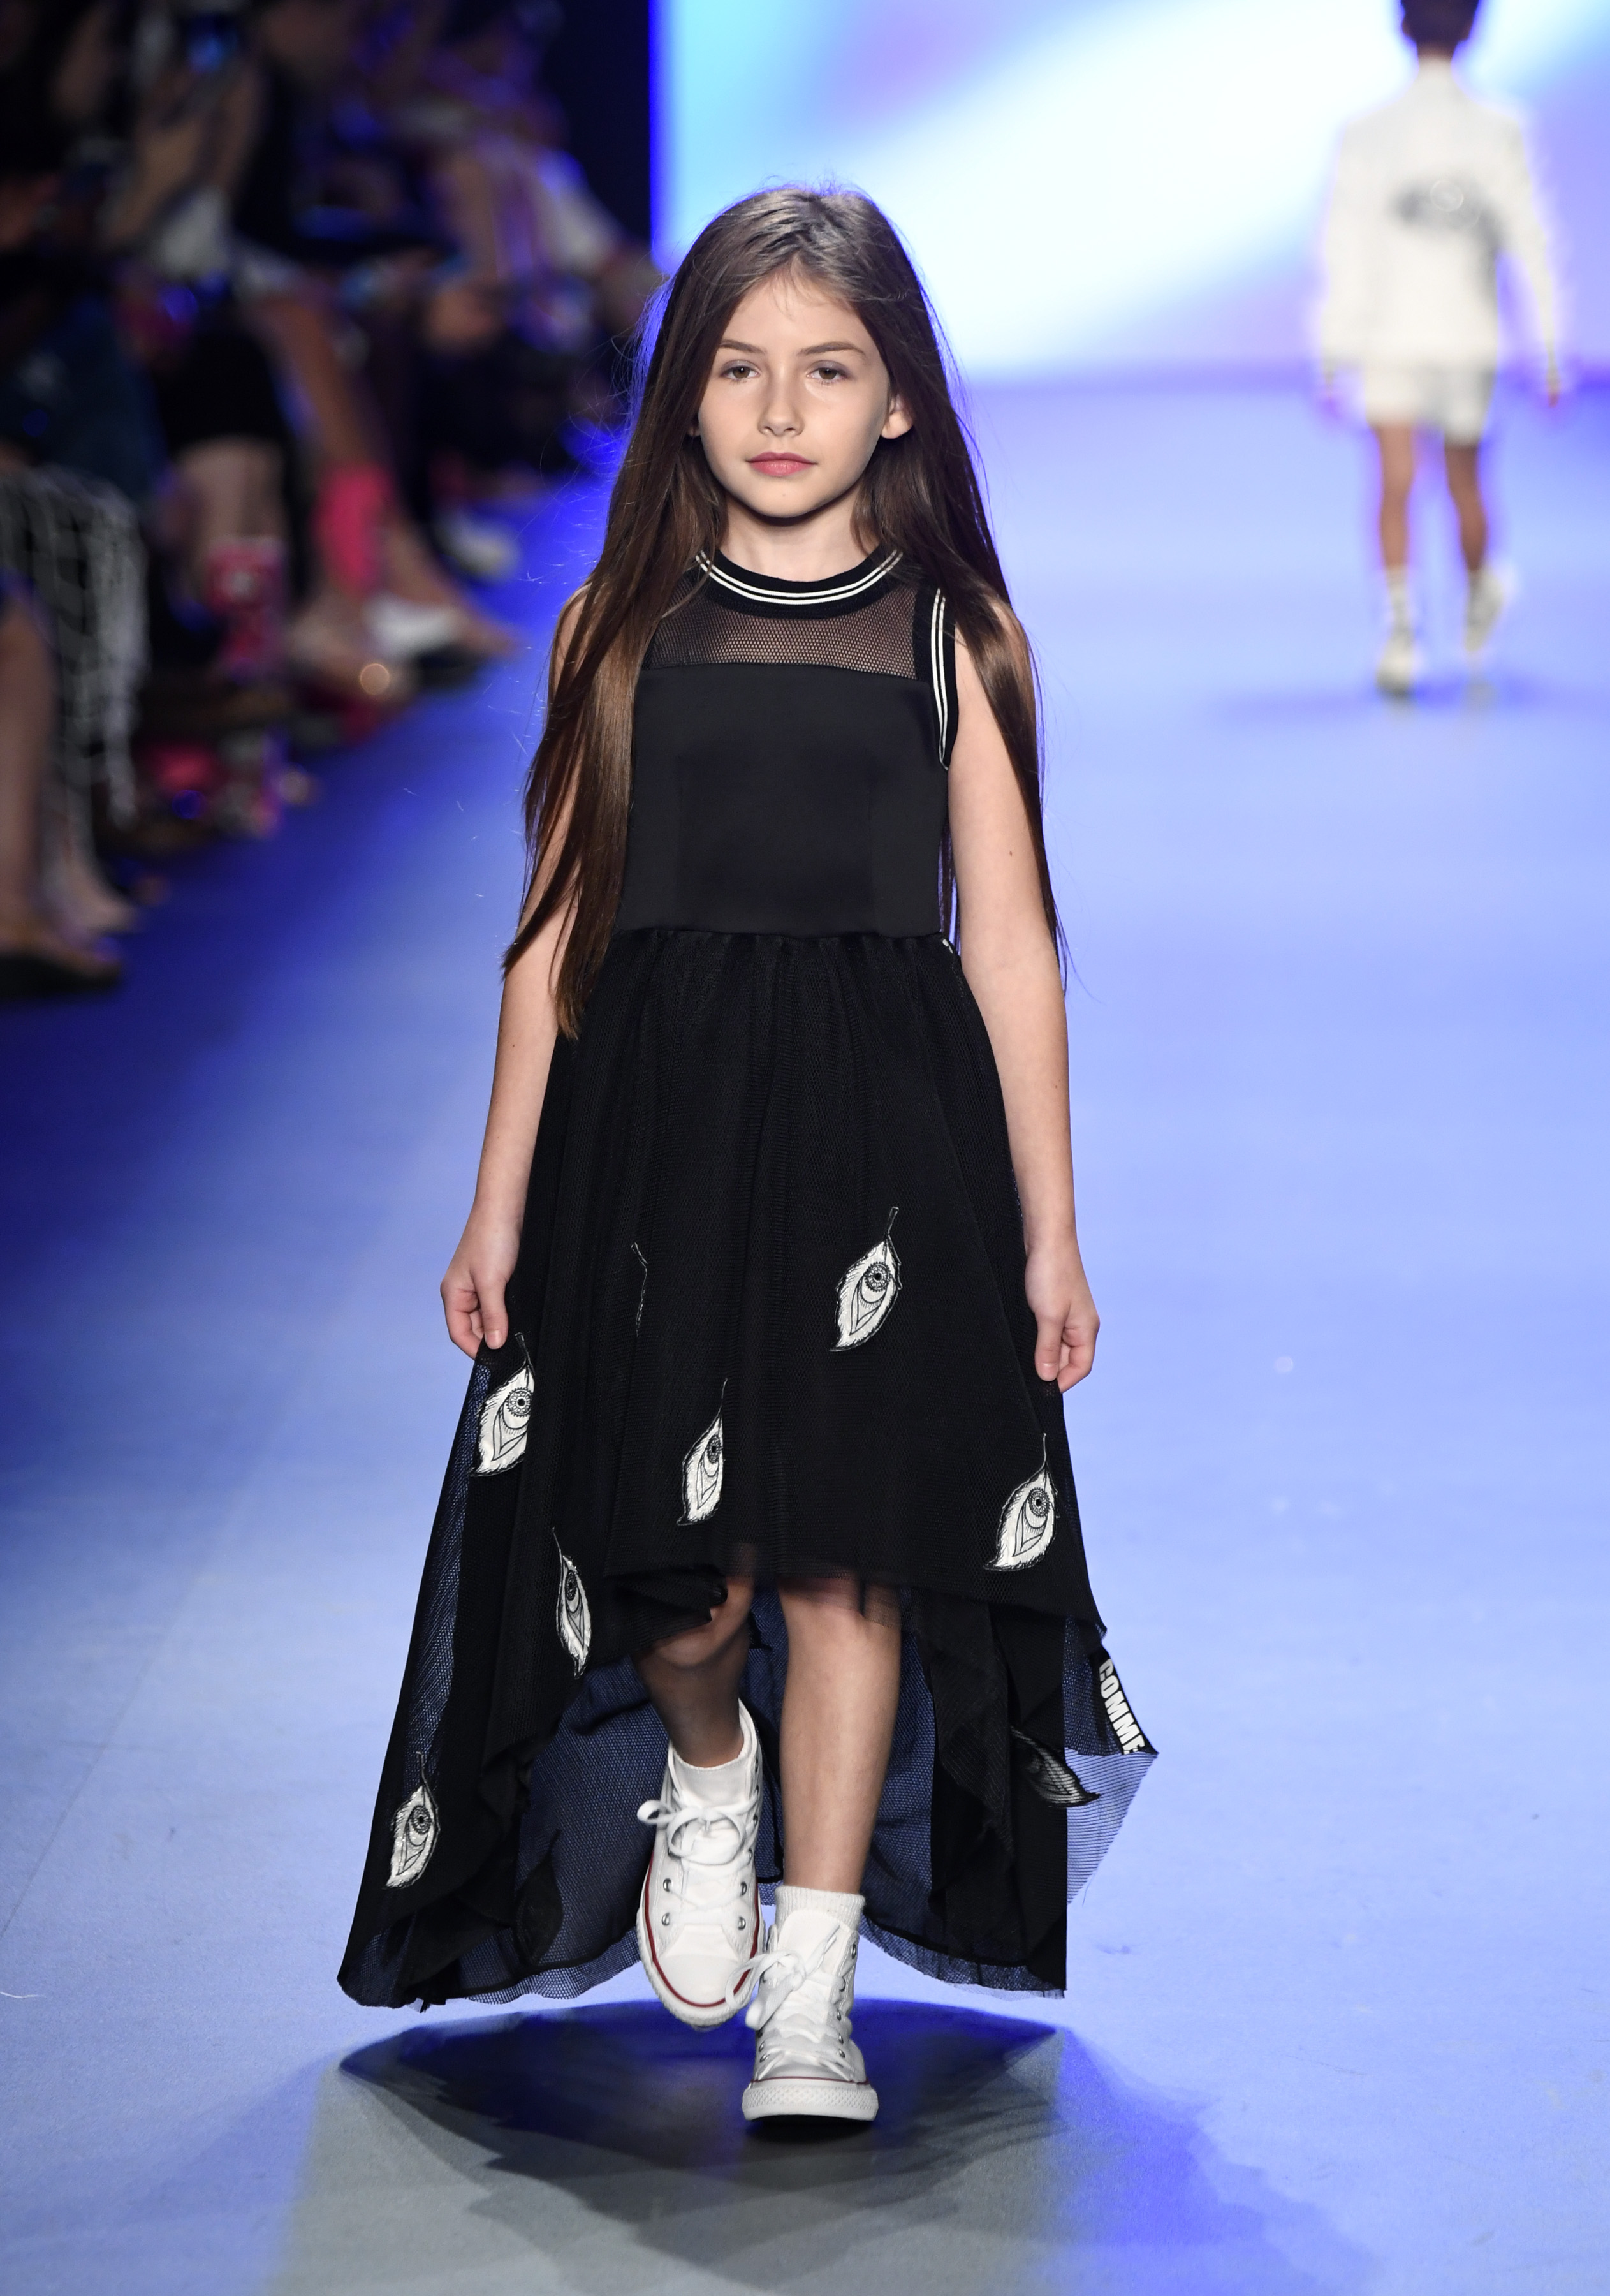 nolchashows nolcha